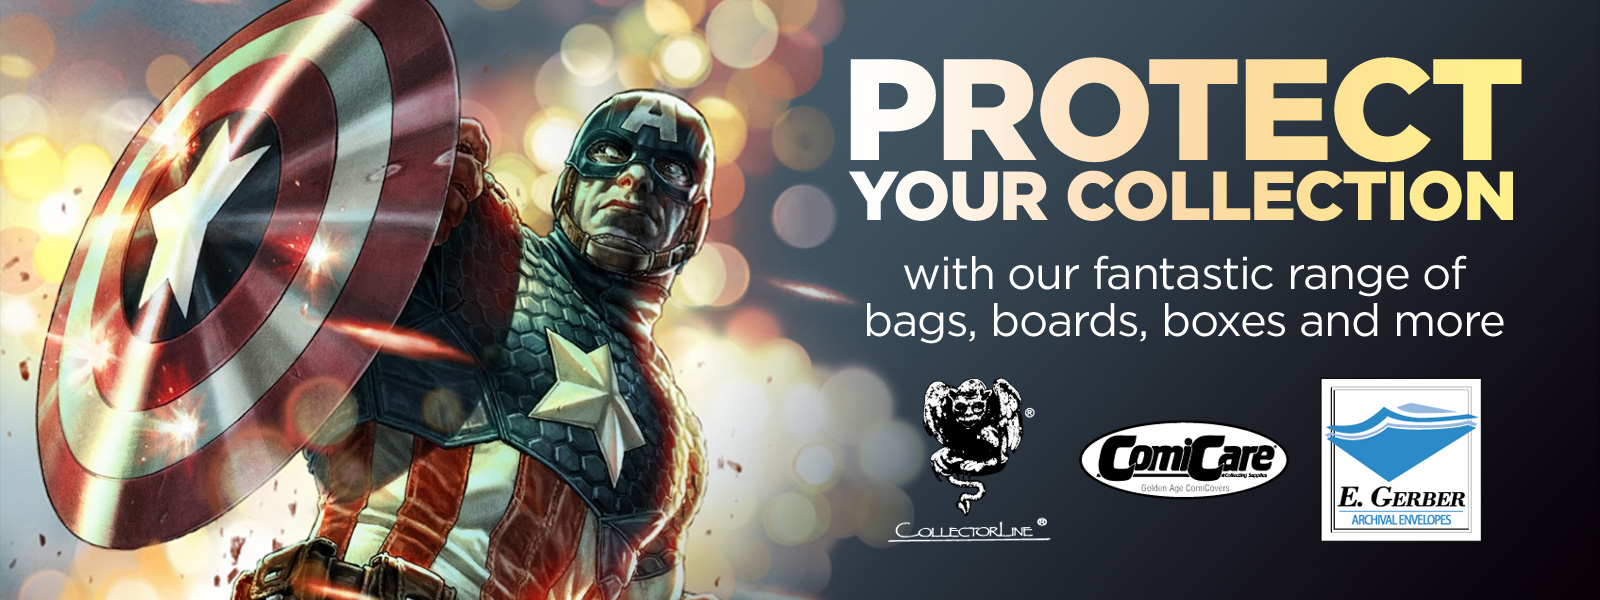 Protect Your Comic Collection